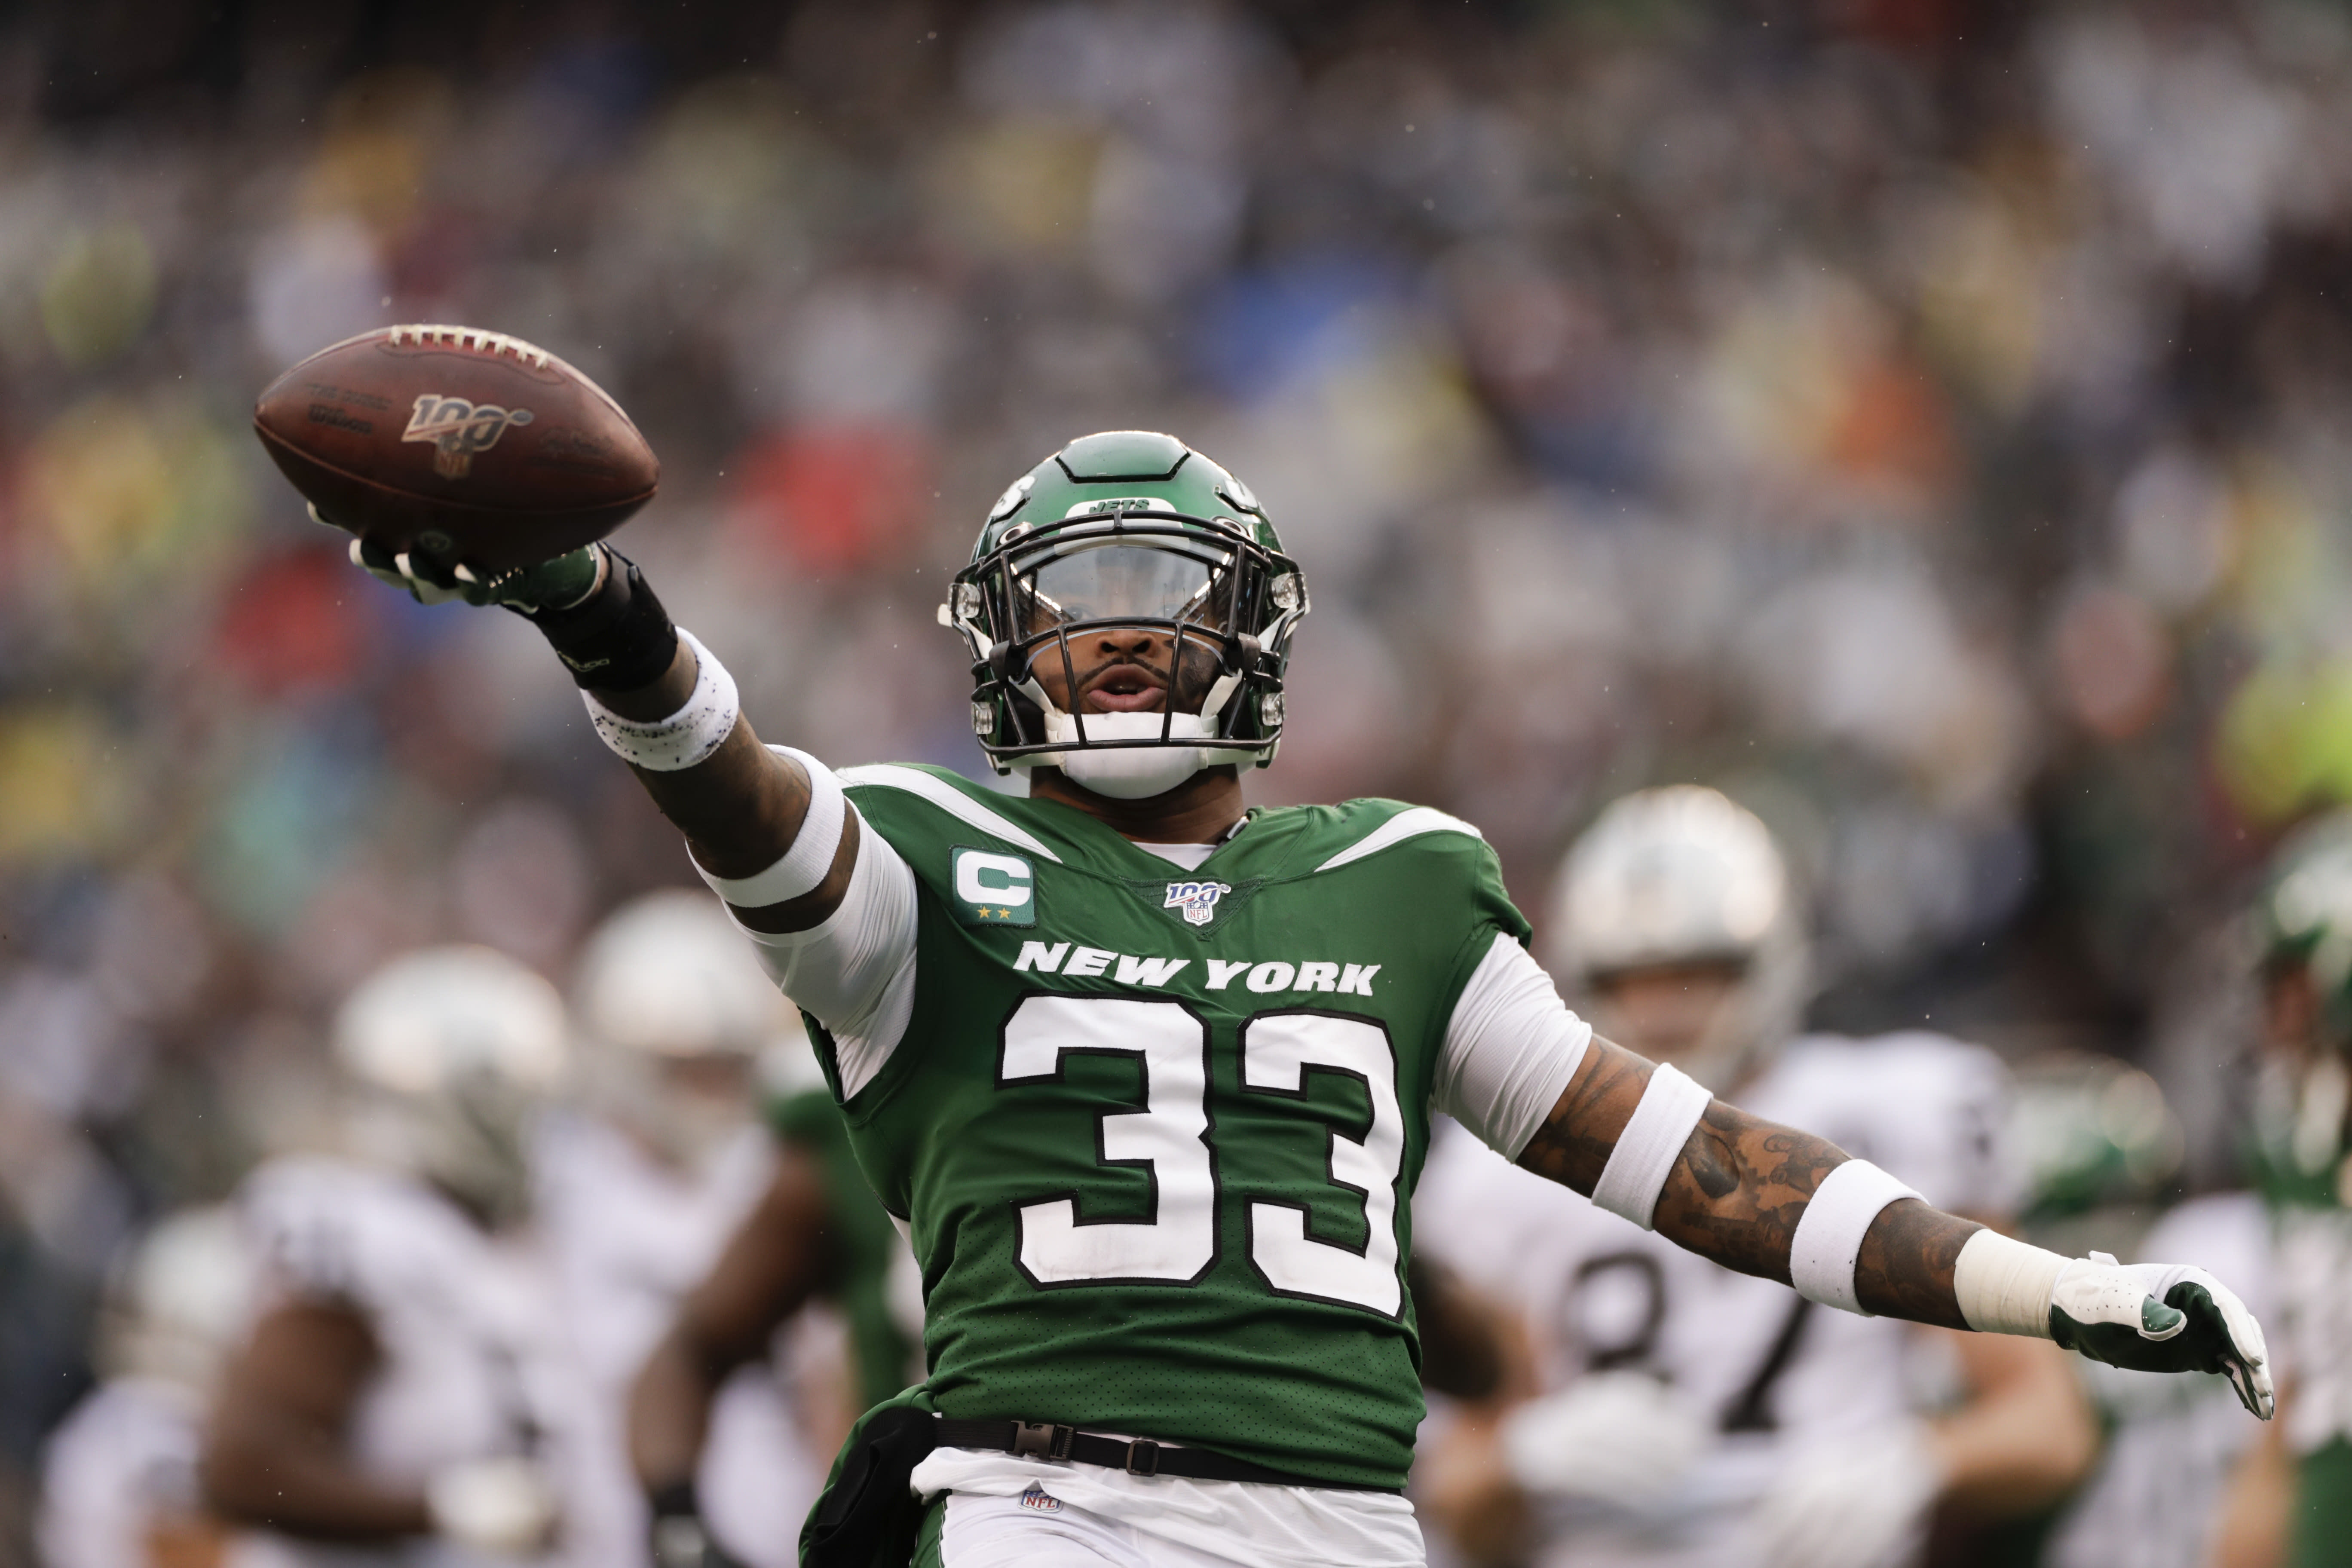 FILE - In this Nov. 24, 2019, file photo, New York Jets strong safety Jamal Adams (33) celebrates after sacking Oakland Raiders quarterback Derek Carr during the first half of an NFL football game in East Rutherford, N.J. . The trade of Jamal Adams was still a hot topic Tuesday, July 28, 2020, as Jets players begin filtering into the team's facility for the start of an unusual training camp, and the coach had a few mostly positive words about his former star safety. (AP Photo/Adam Hunger, File)